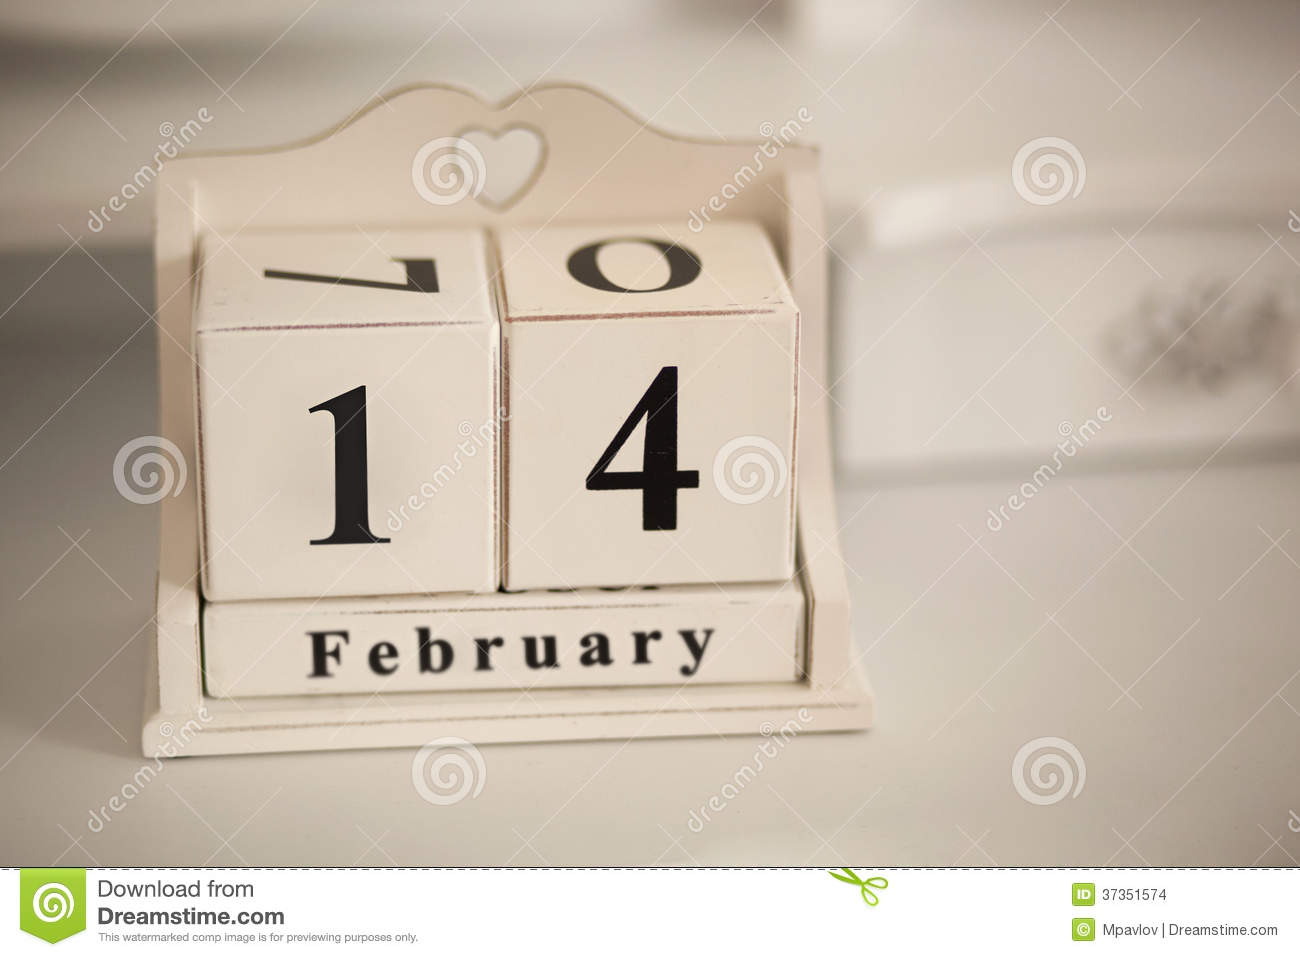 February 14 Vintage Calendar Stock Images - Image: 37351574